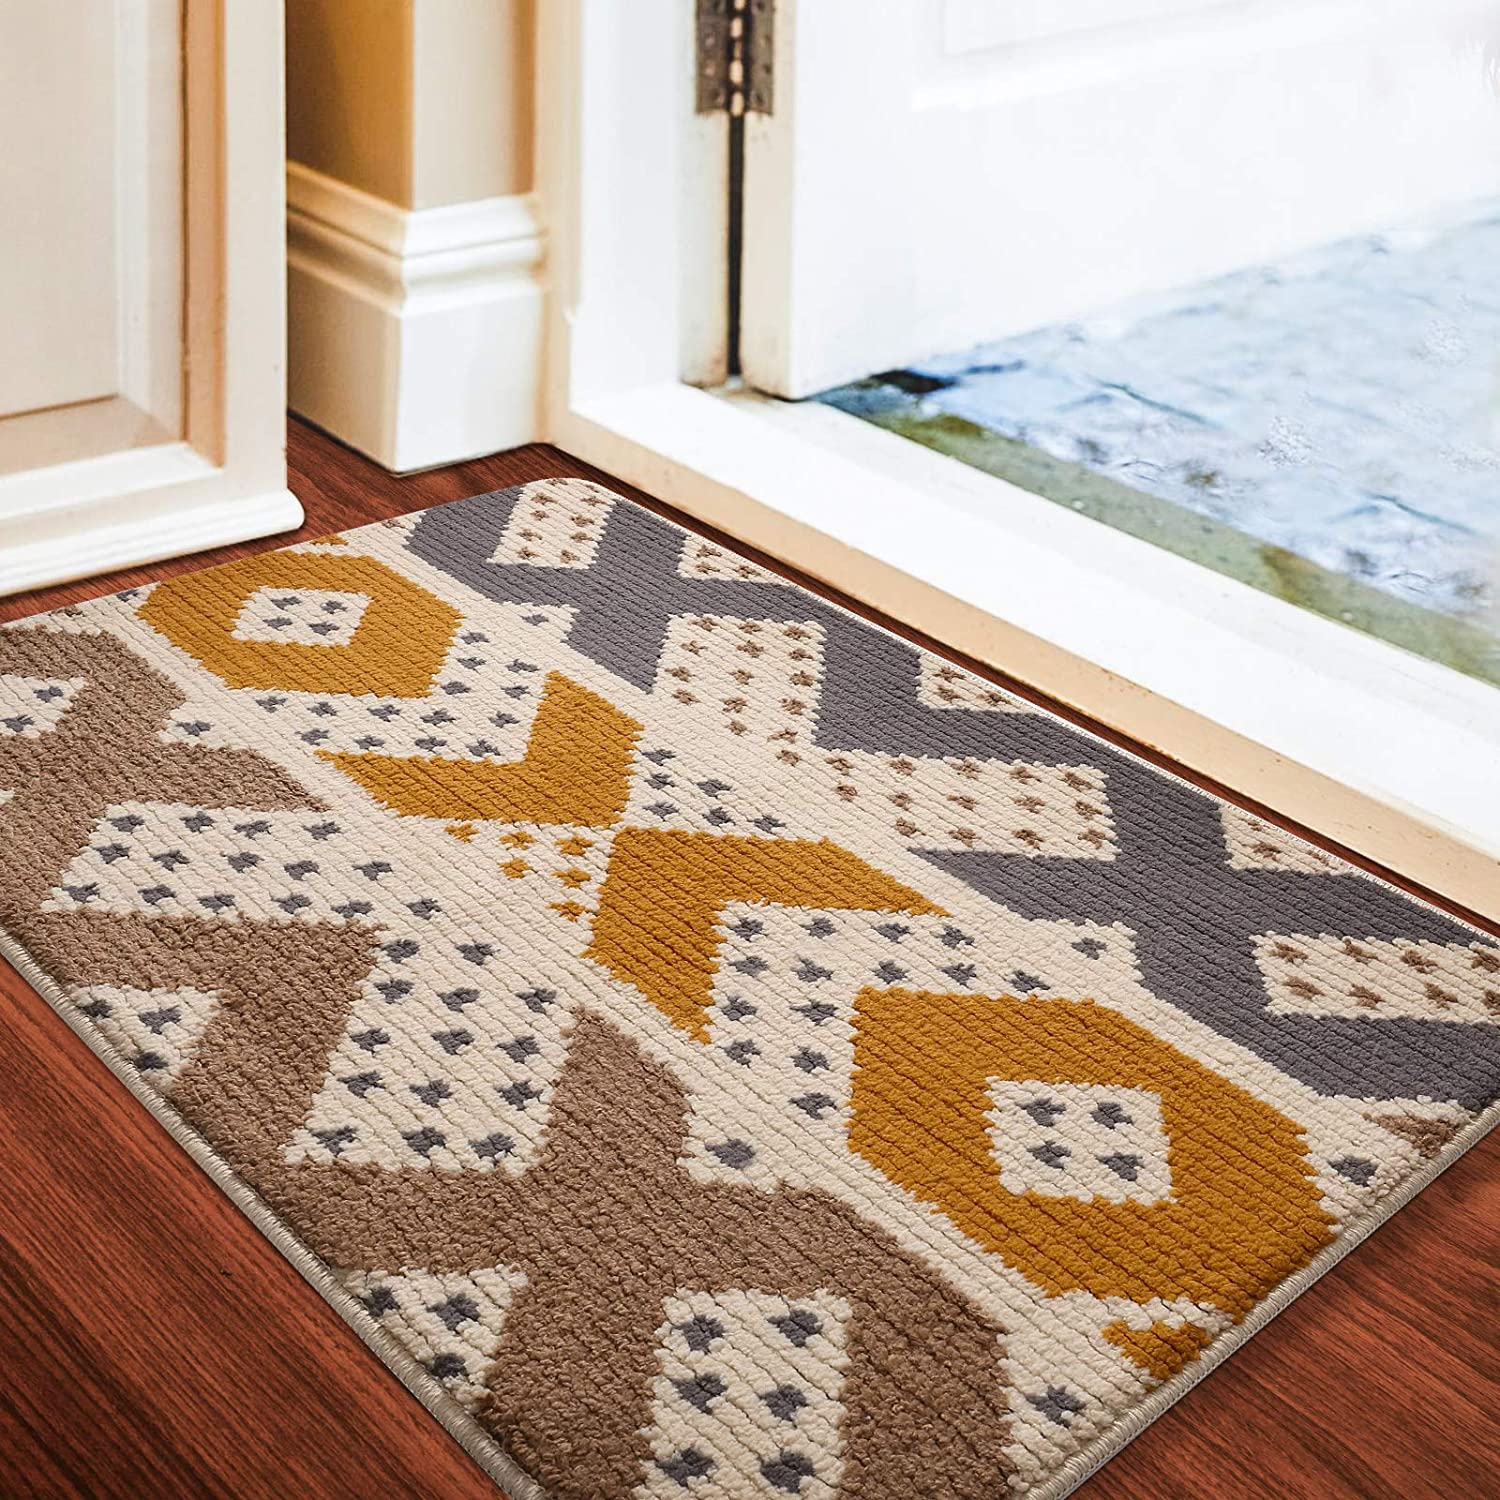 "Color&Geometry Indoor Doormat Front Door Mat 24""x36"" Waterproof, Non Slip Washable Quickly Absorb Moisture and Resist Dirt Rugs for Entrance"